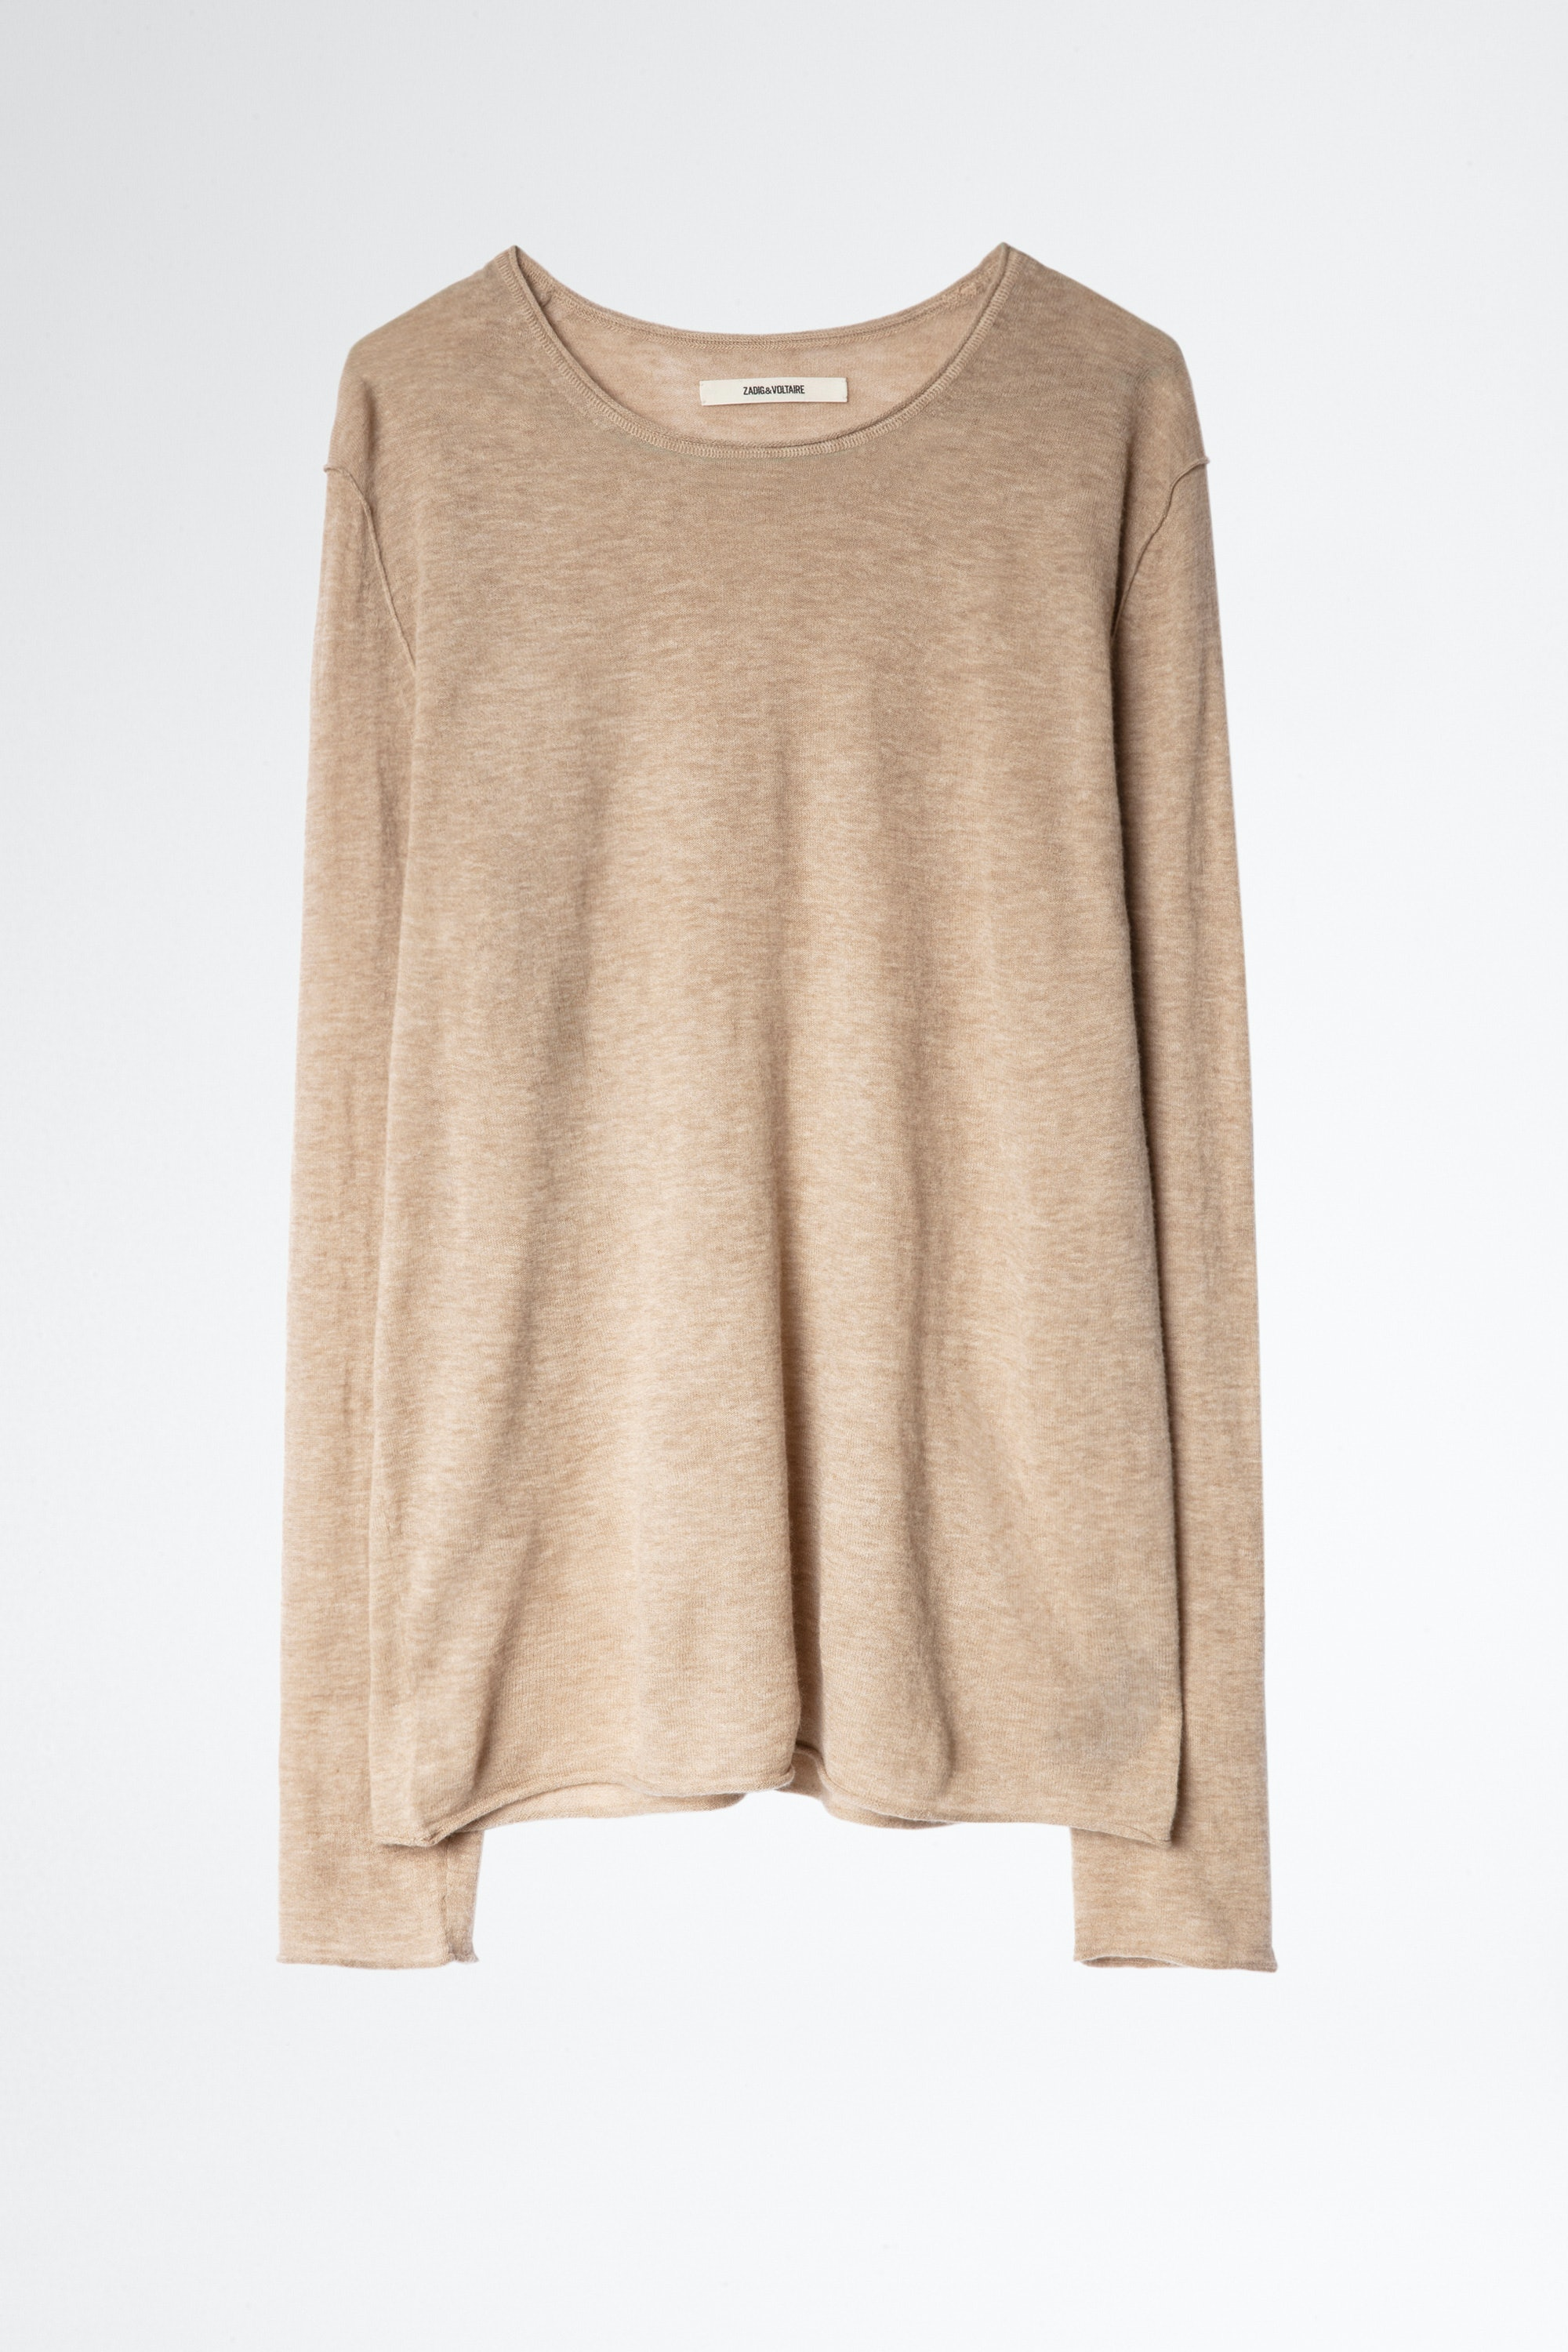 Pull Teiss Cachemire